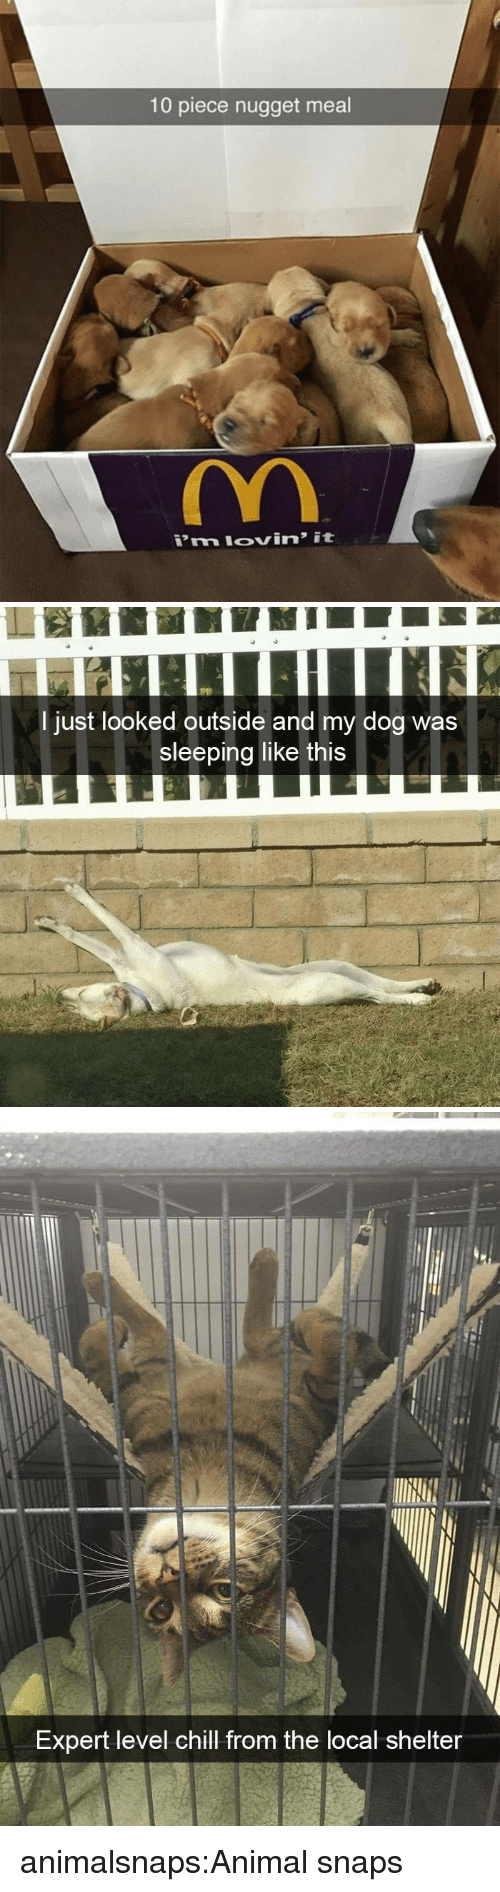 Chill, Target, and Tumblr: 10 piece nugget meal   29  I just looked outside and my dog was  sleeping like this   Expert level chill from the local shelter animalsnaps:Animal snaps